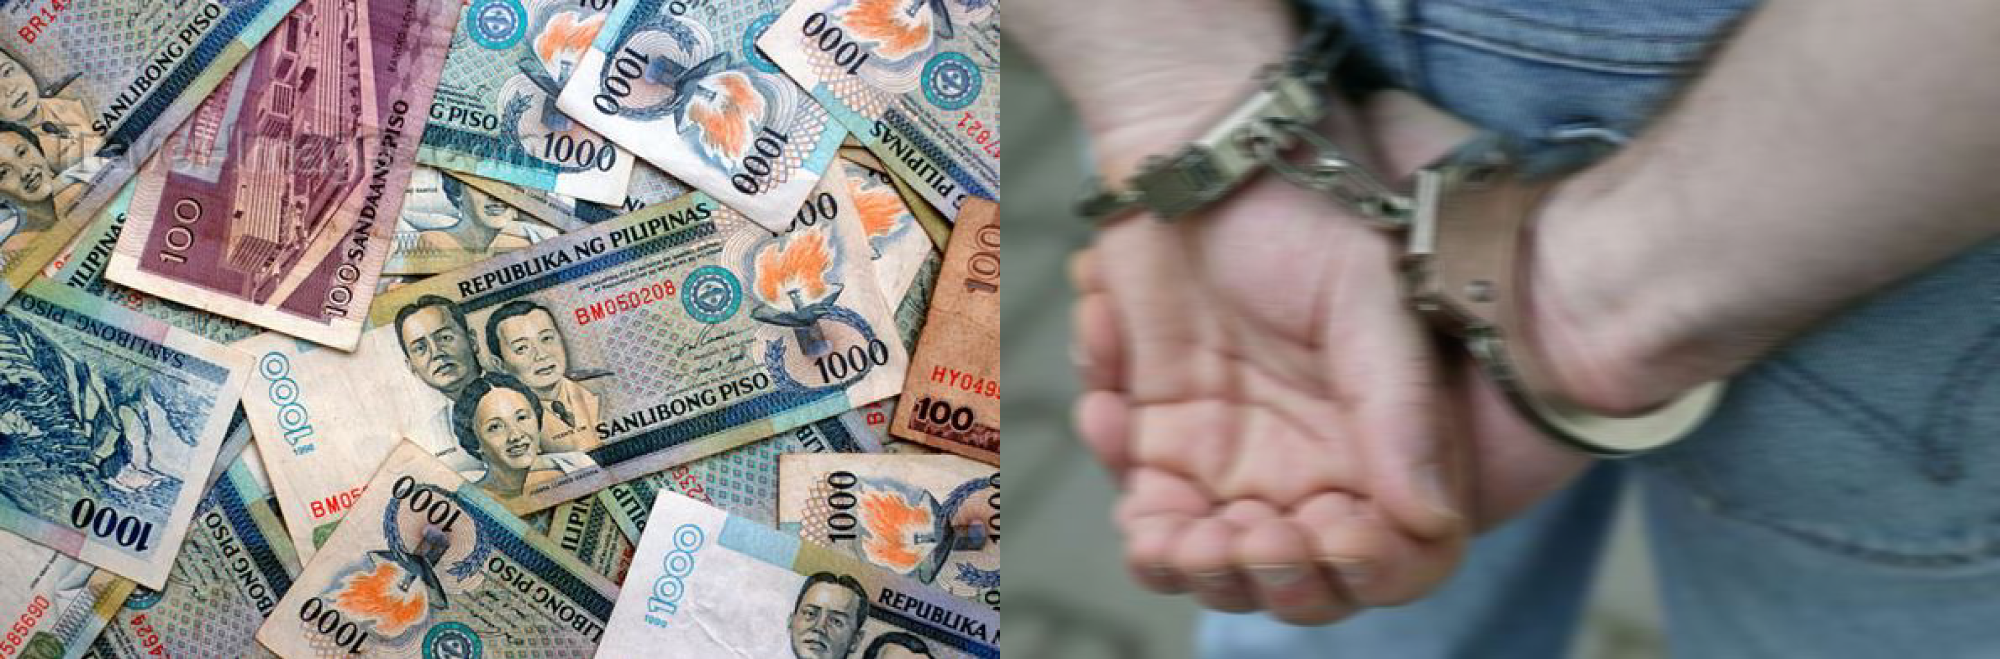 photo of money and handcuffed person